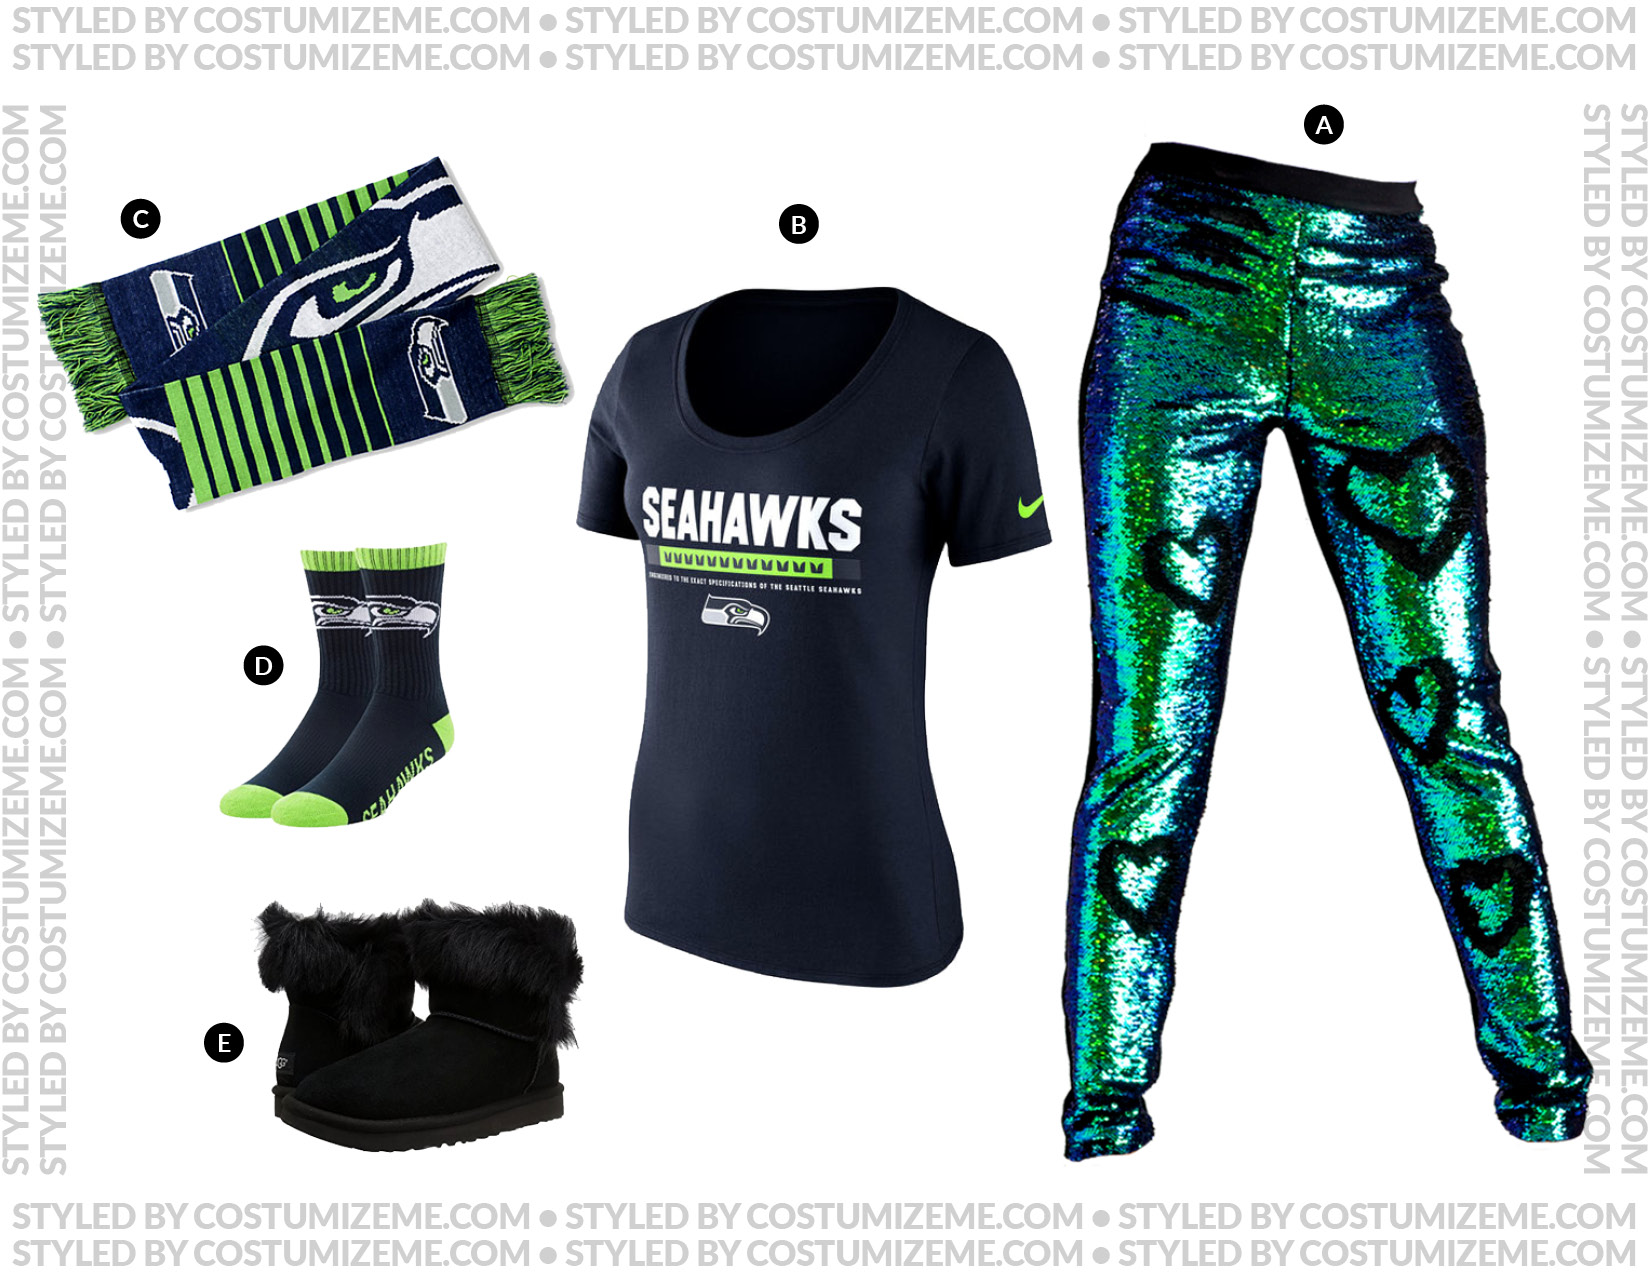 Seattle Seahawks Game Day Fan Fashion Outfit